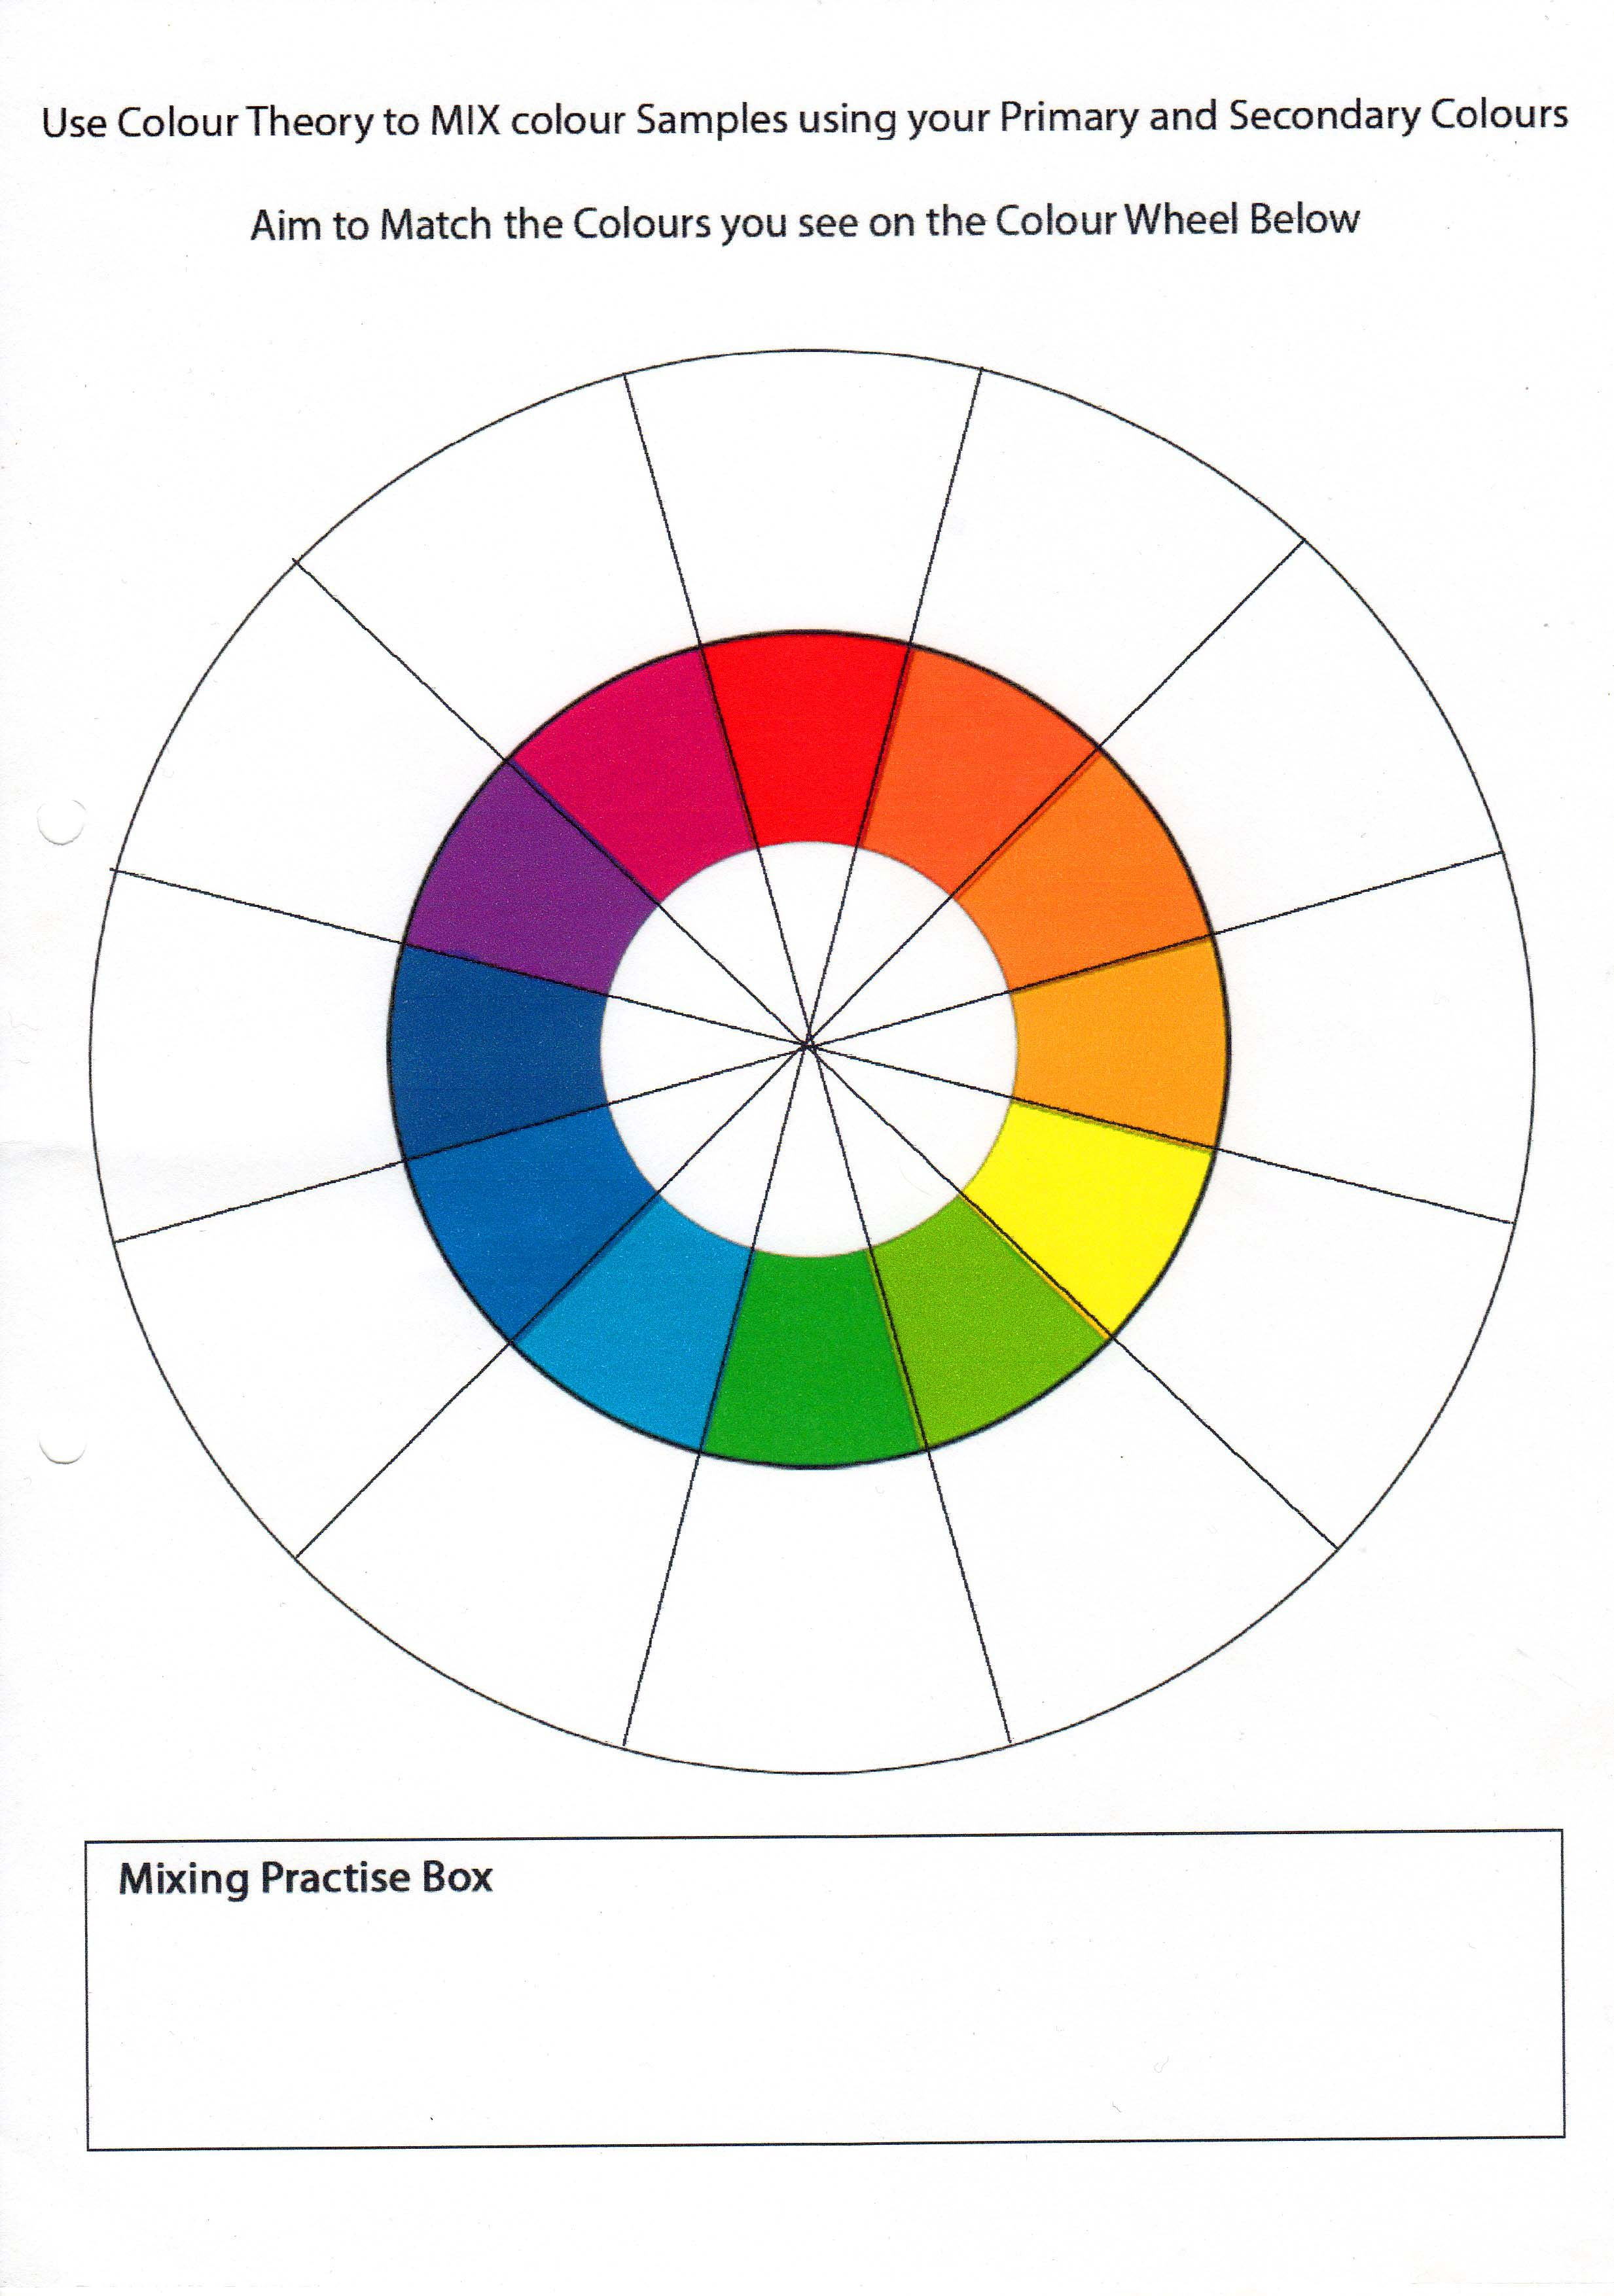 Color Wheel Worksheet Pictures to Pin on Pinterest - PinsDaddy